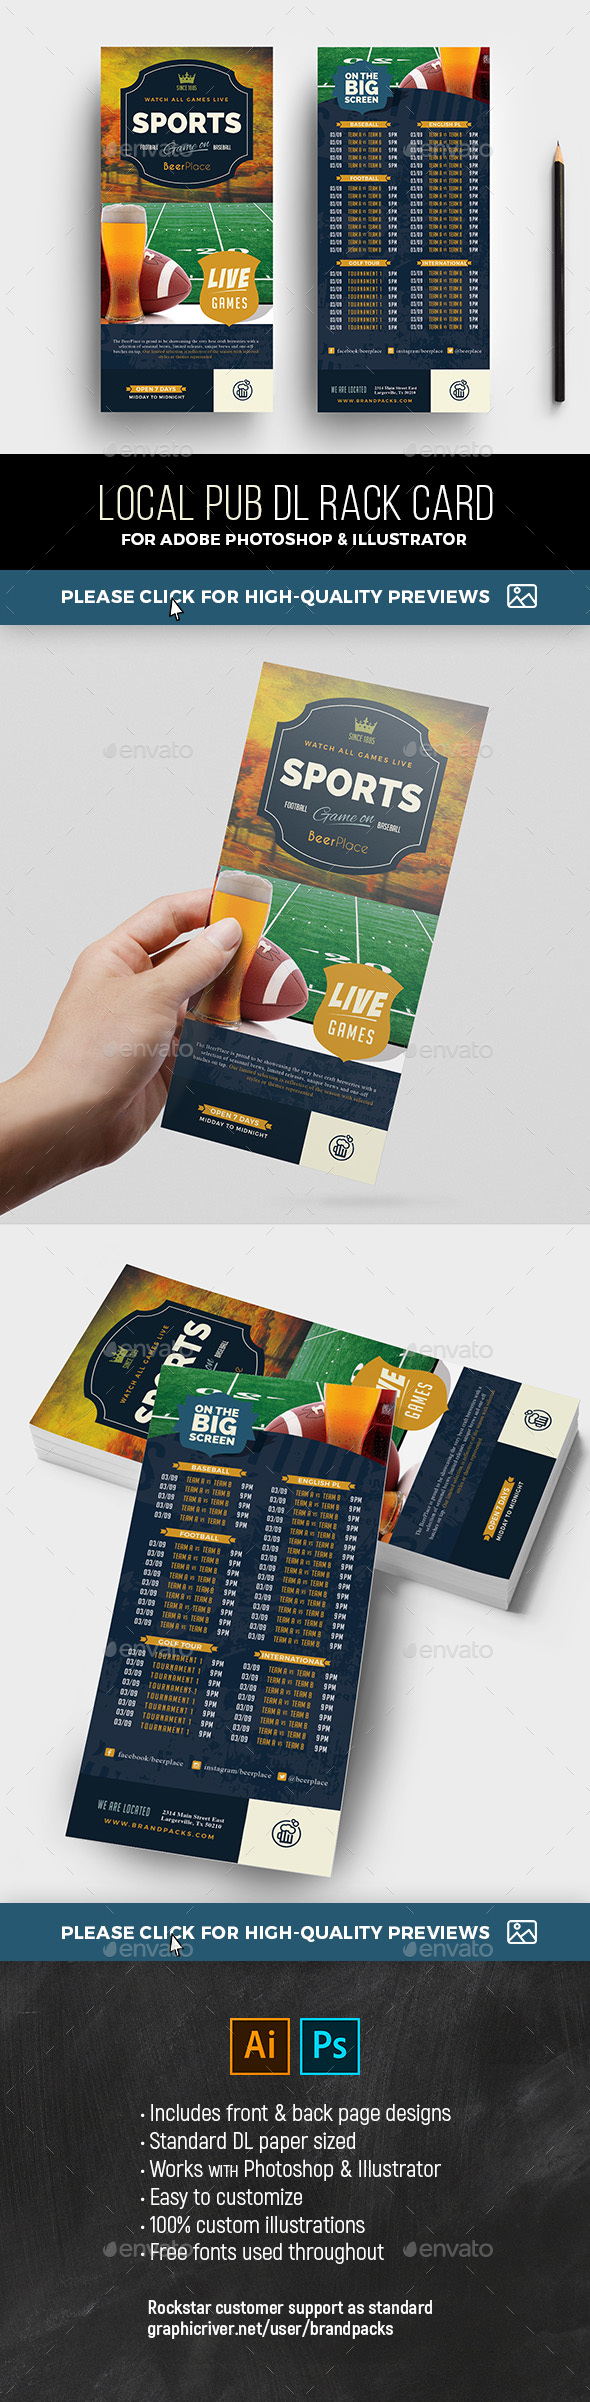 Sports Bar Rack Card Template - Restaurant Flyers